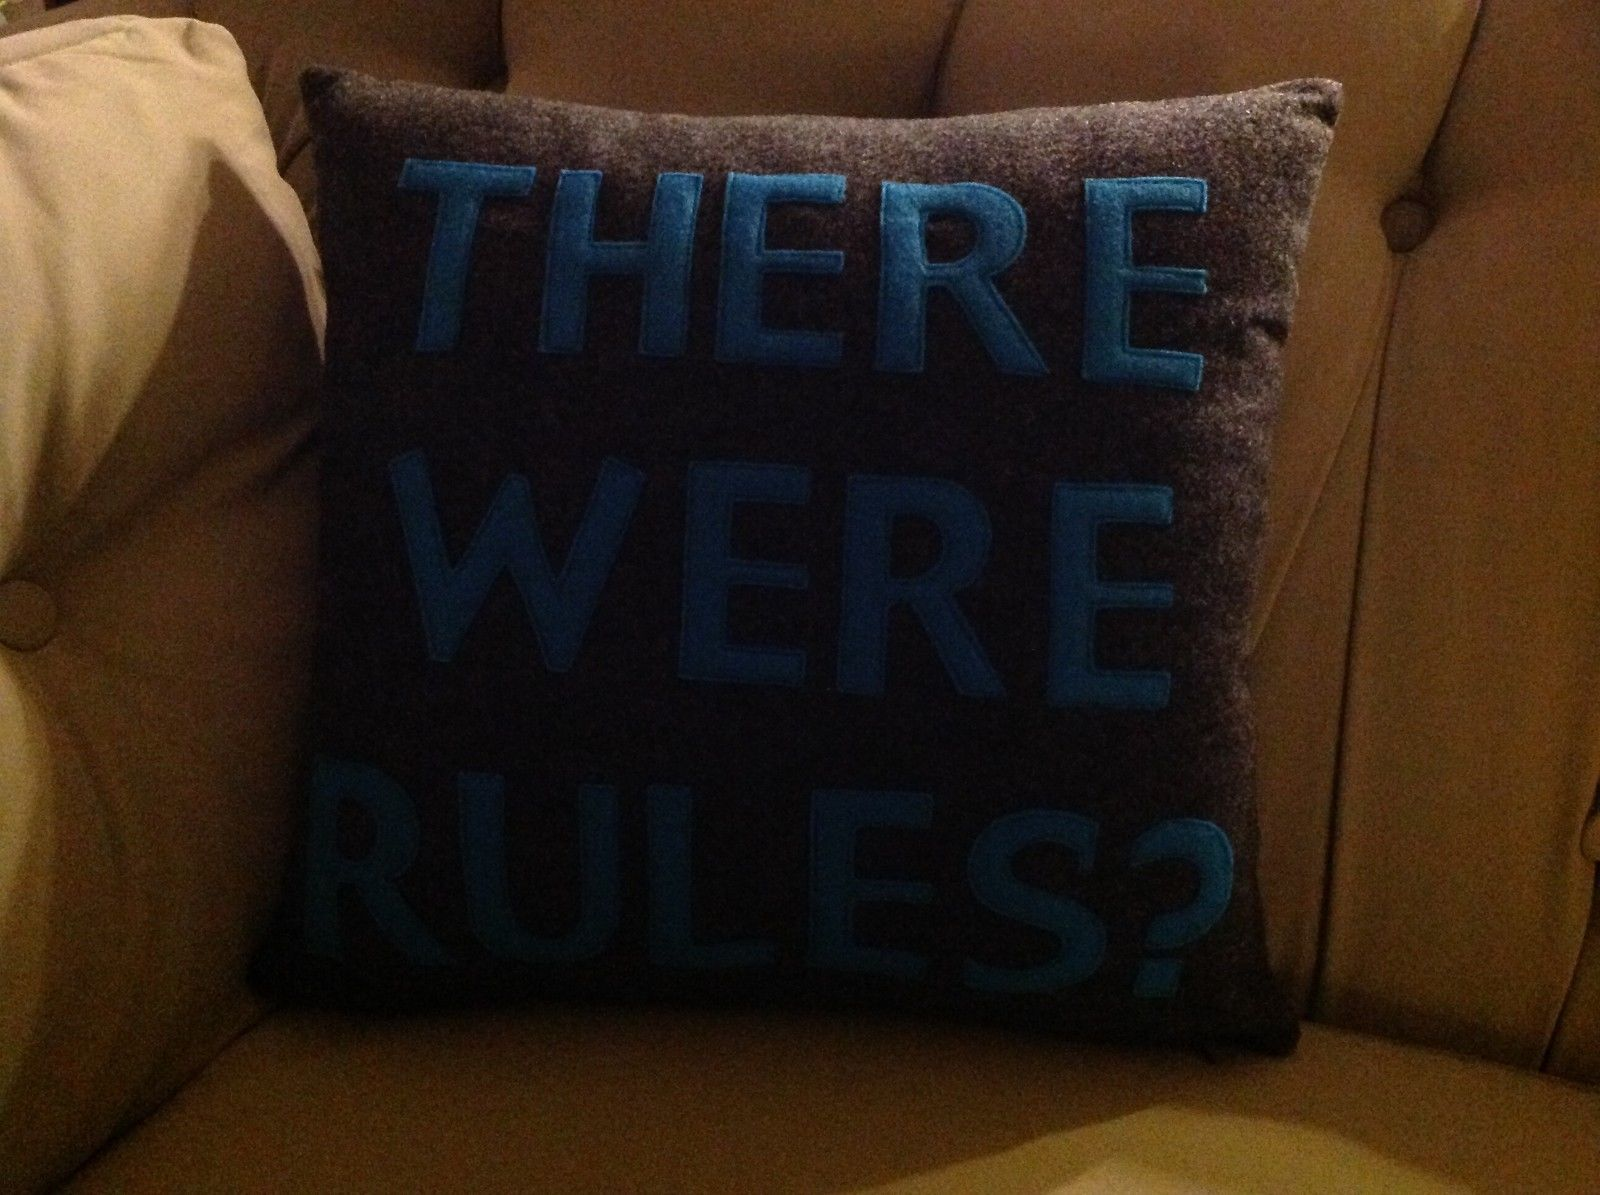 New fun throw pillow  Made in USA There were Rules ?   by Alexandra Ferguson